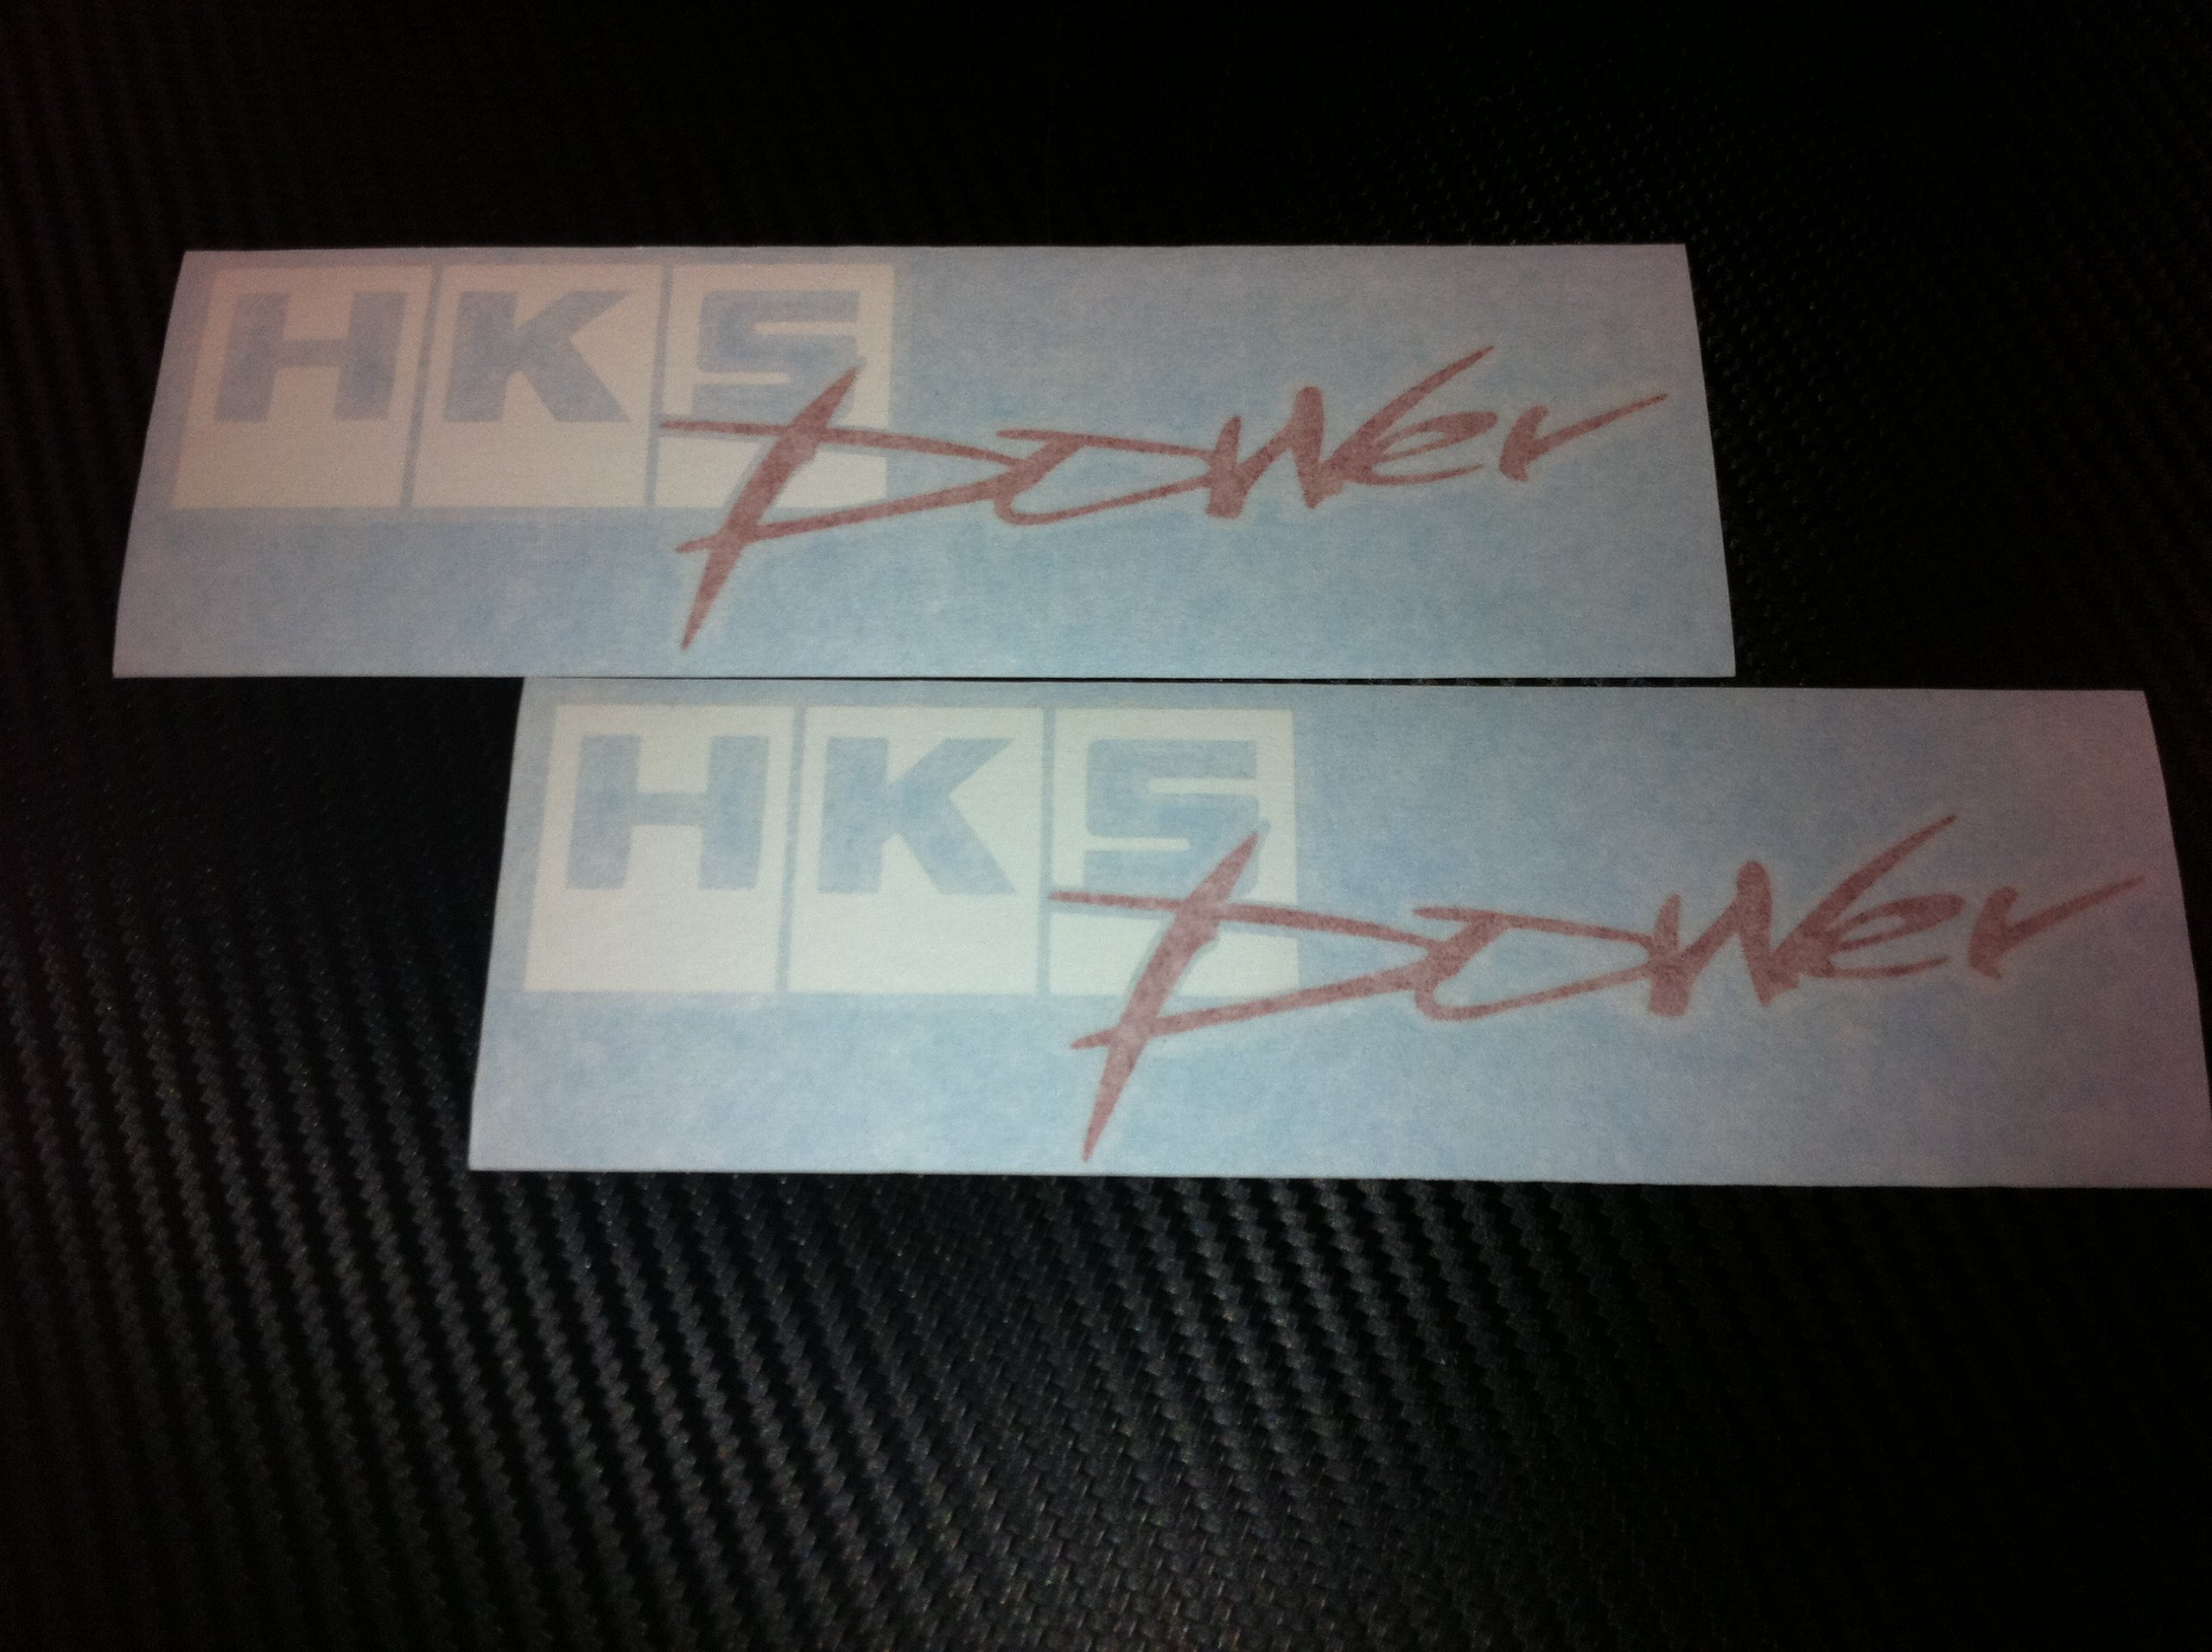 2 X HKS Power Racing Decal Sticker (New) White/red Size 7''x2.2''